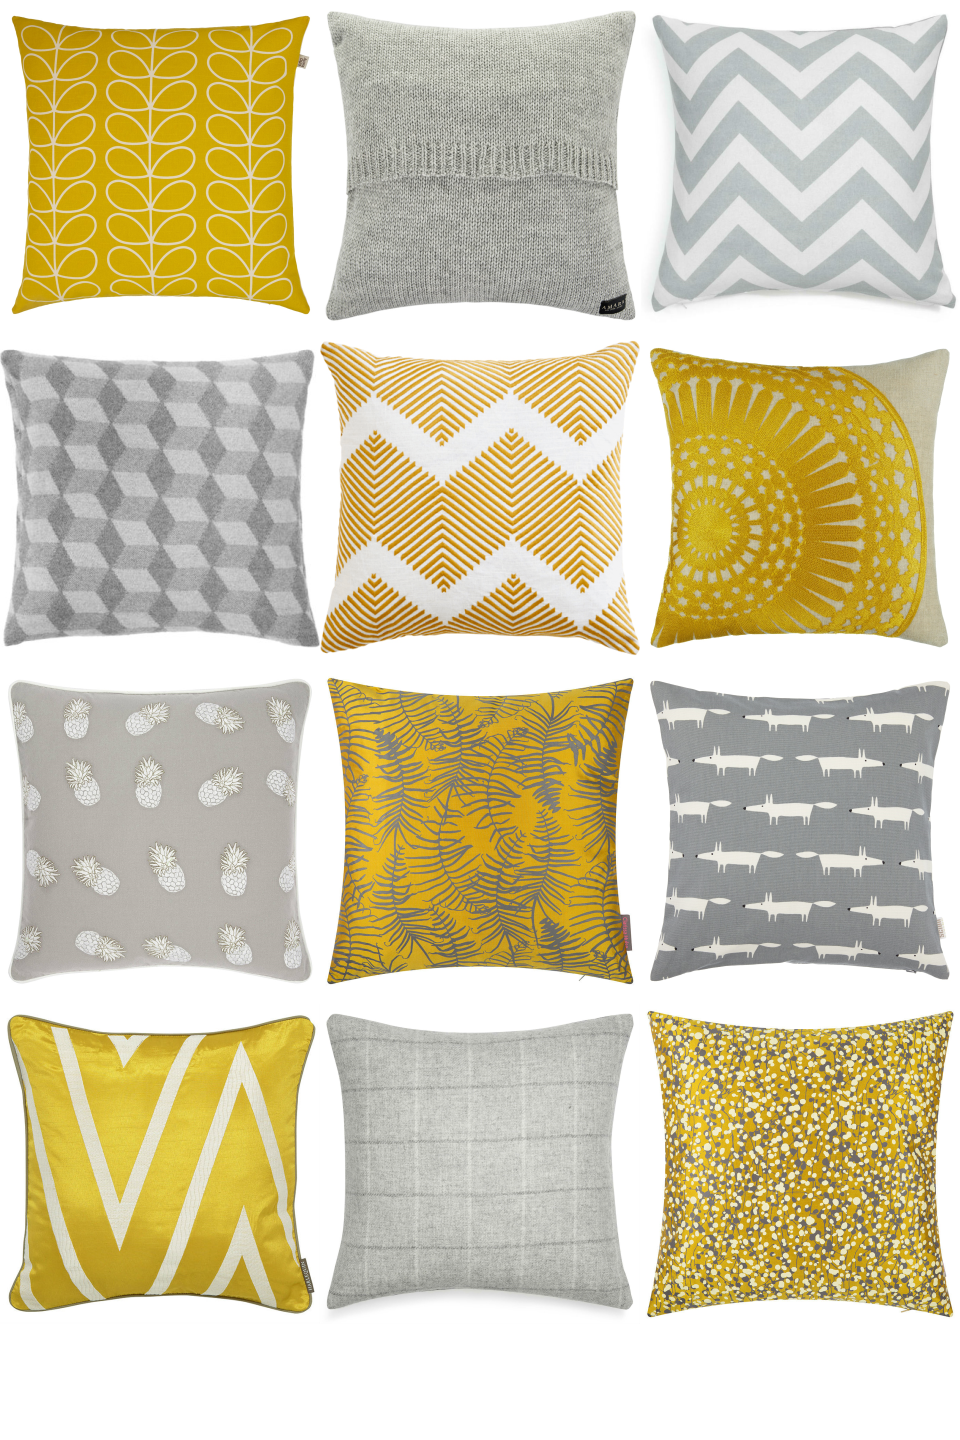 Yellow And Grey Cushions Inspiration Board In Diffe Textures Patterns Get Great Cushion Ideas For Your Living Room Or